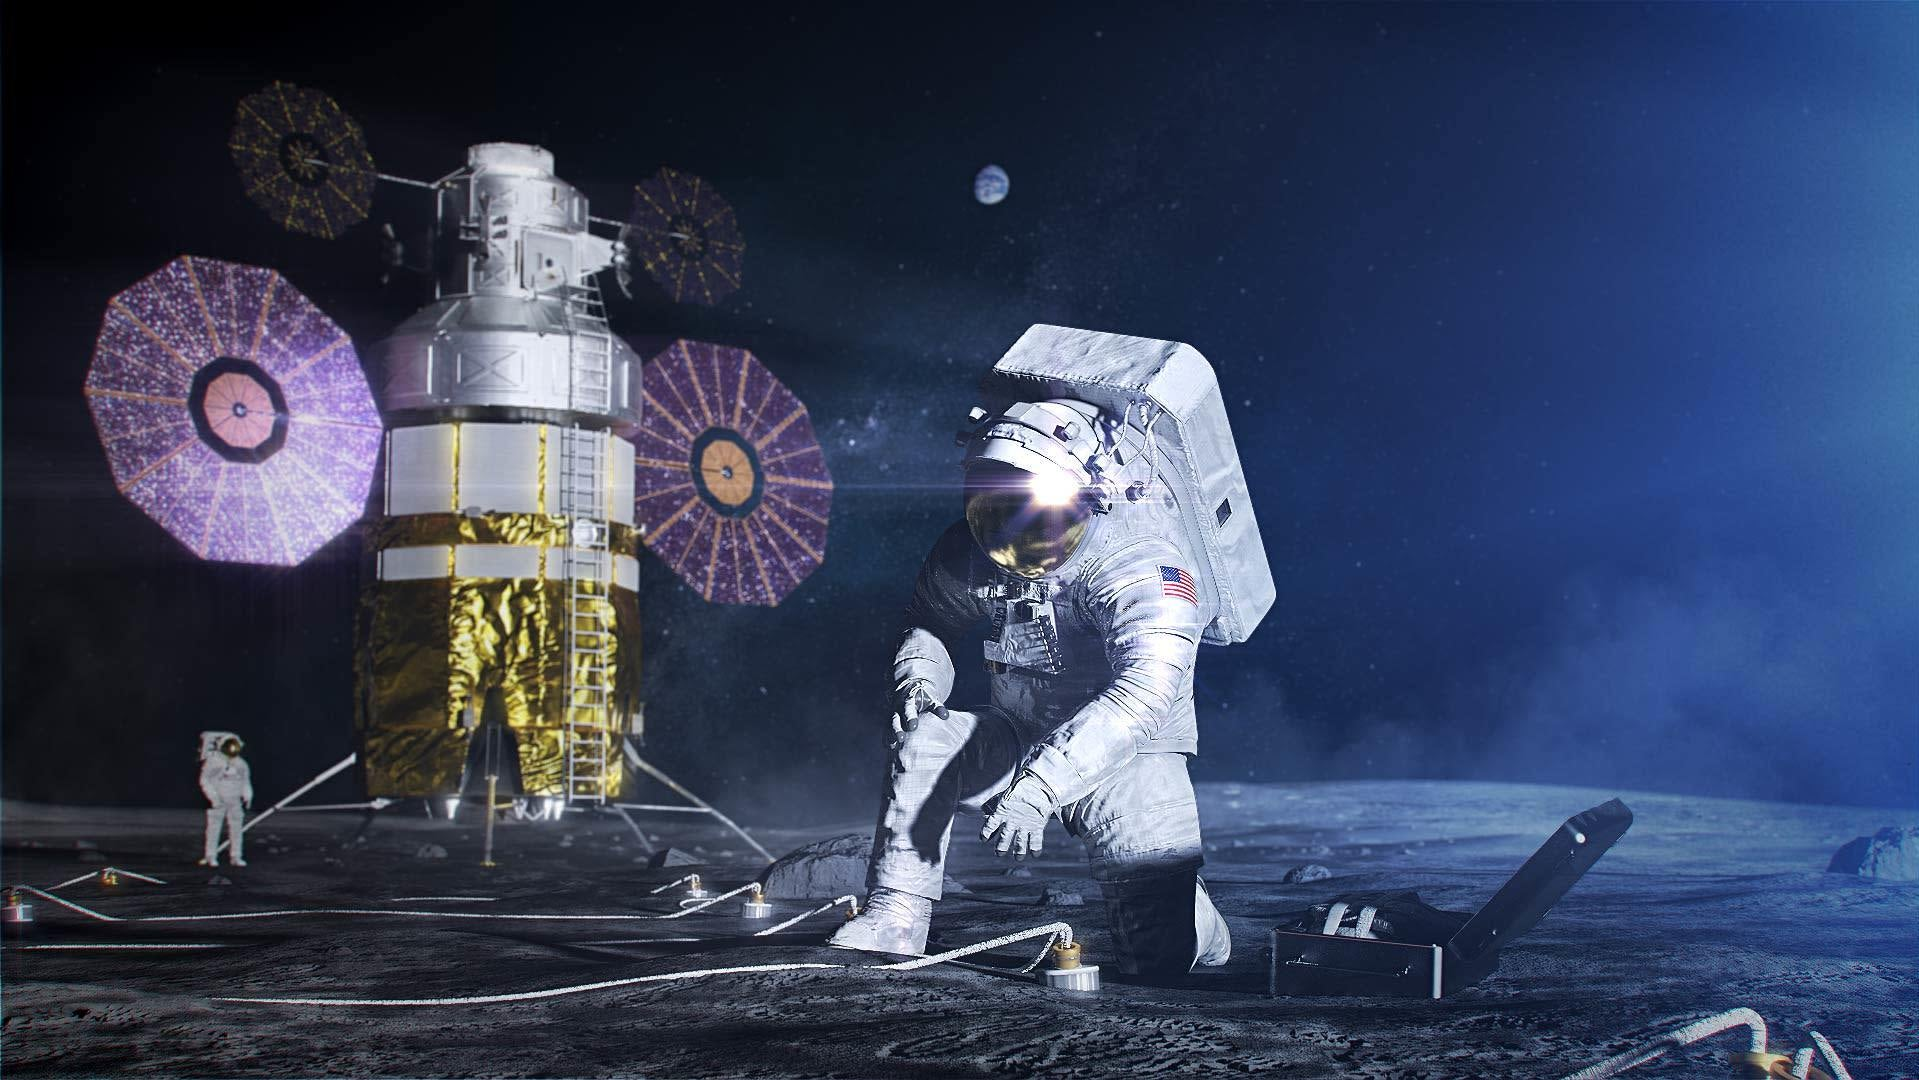 Check Out NASA's Look For The Next Lunar Landing